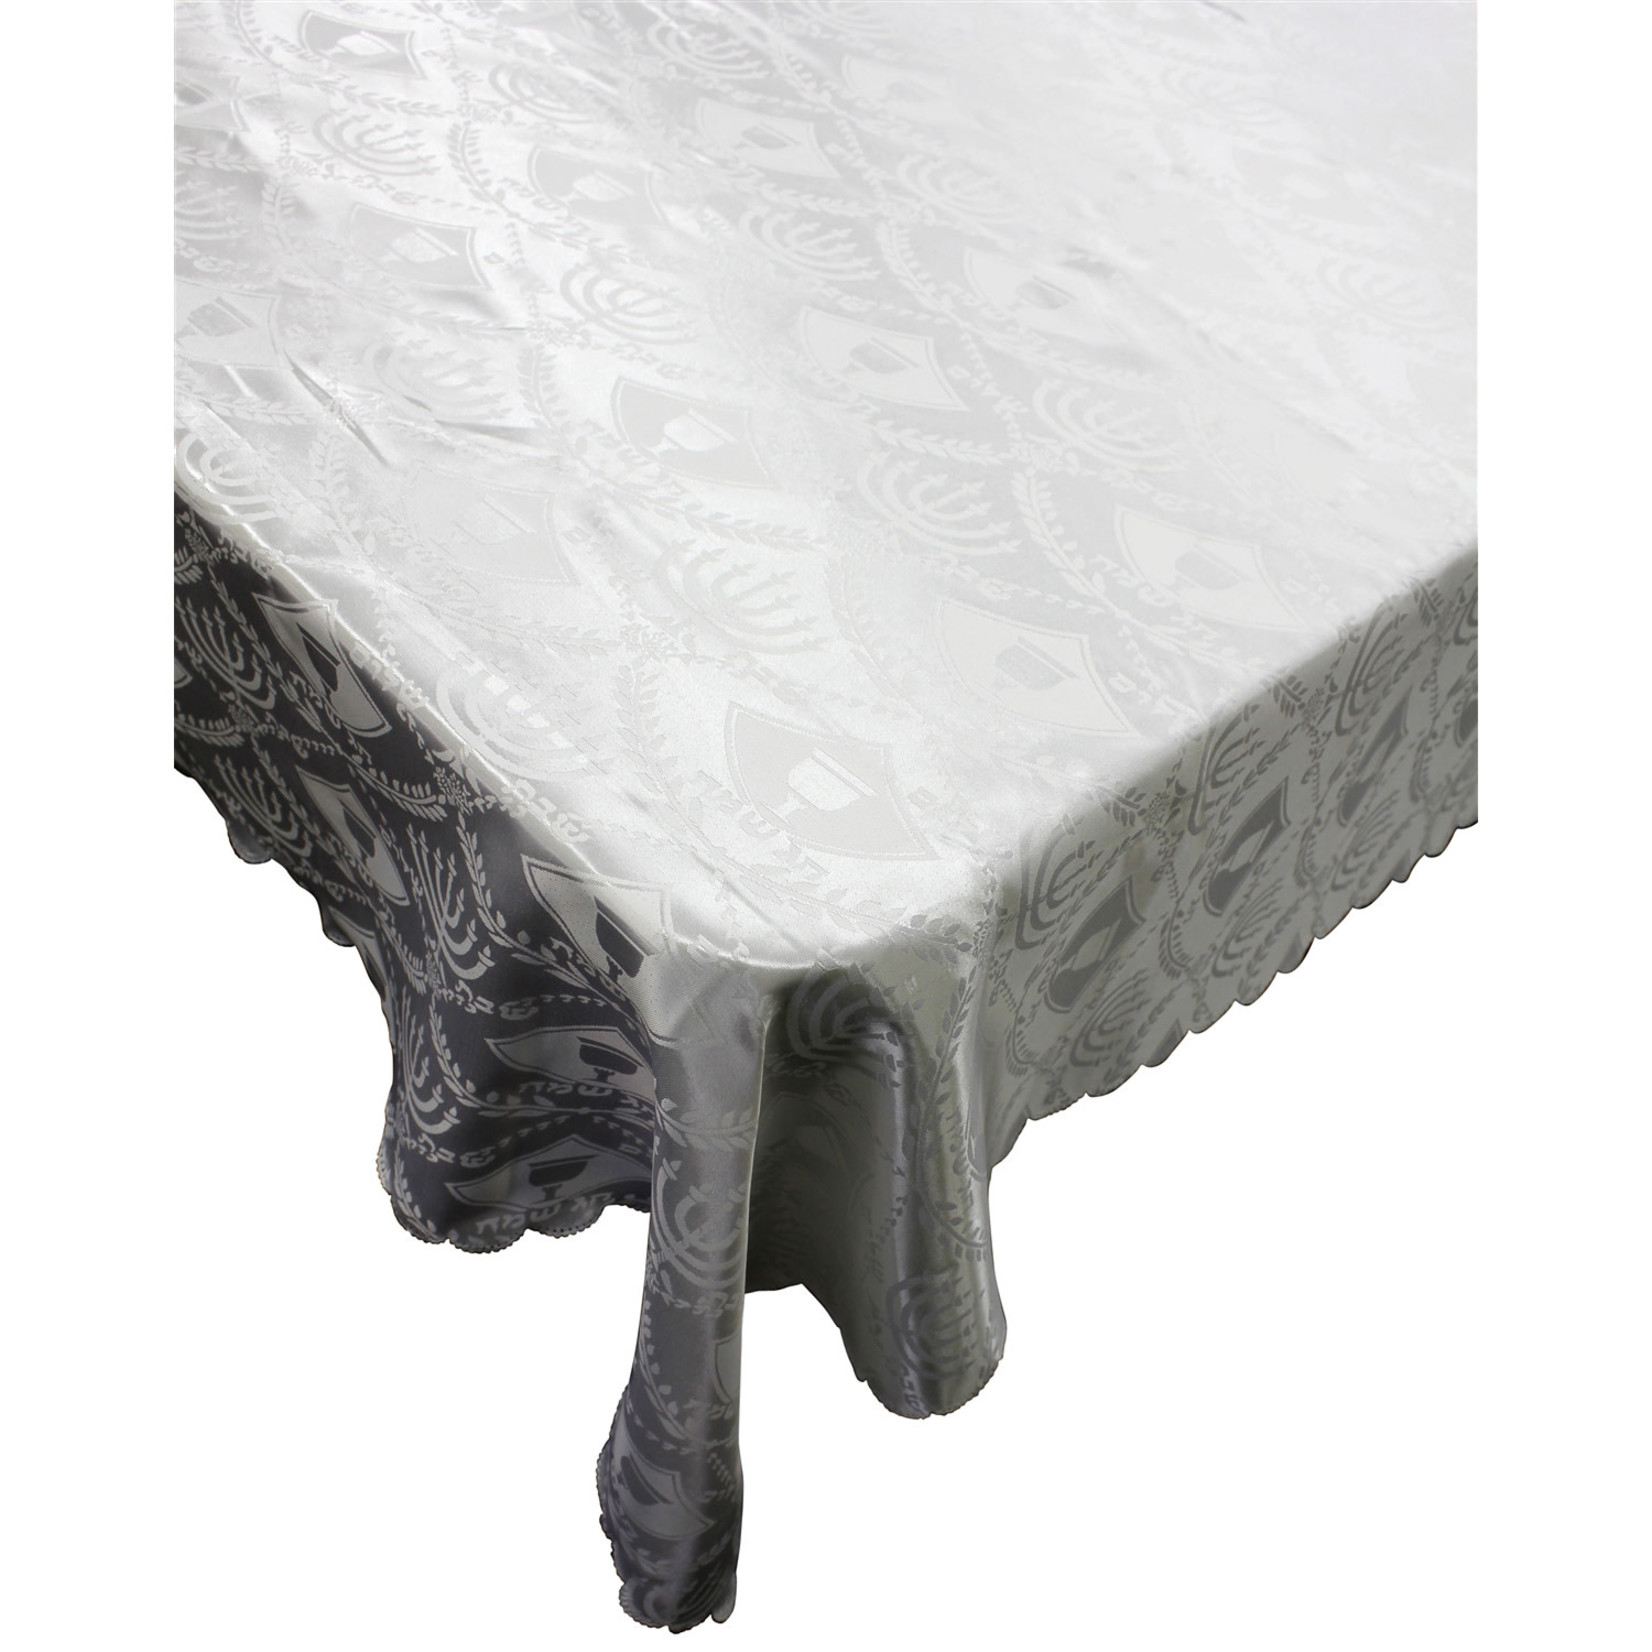 Stain-Resistant Tablecloth, 60x144 in (152x366 cm)